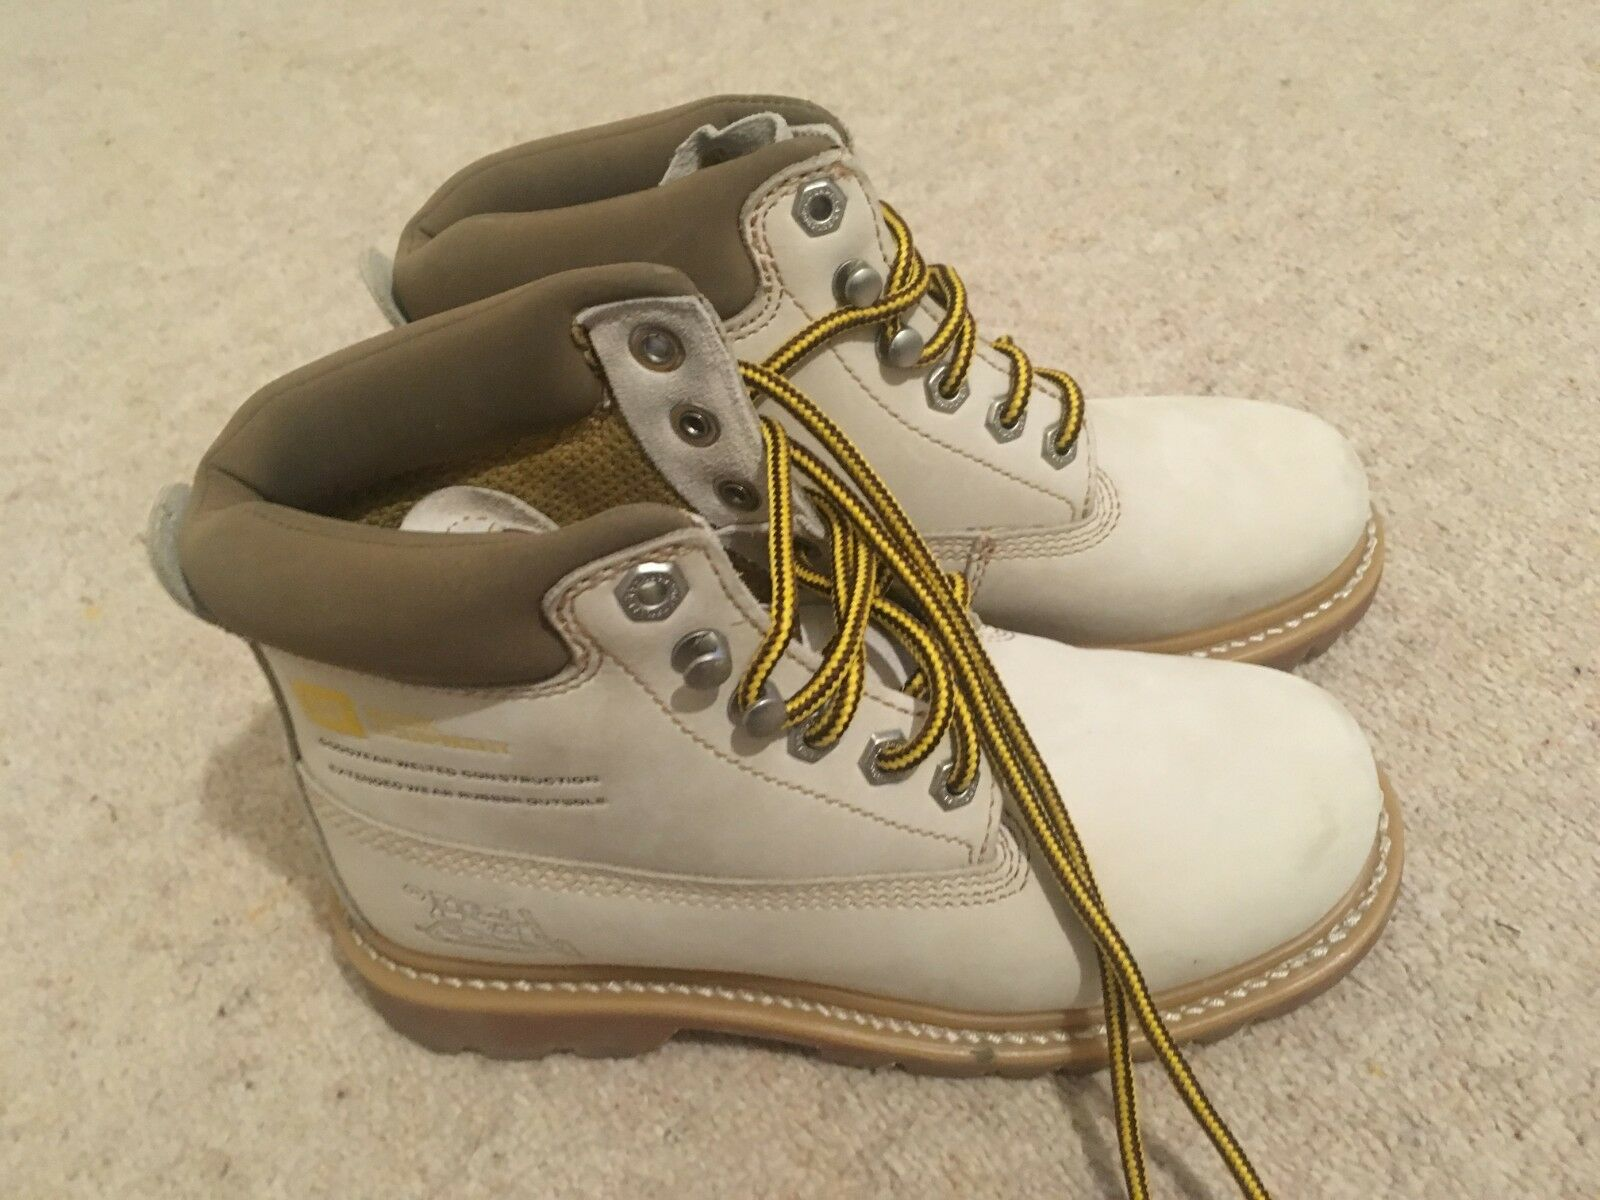 Weiß Caterpillar Cat Stiefel Suede Work Equipment Techni Flex Größe 4 37 New